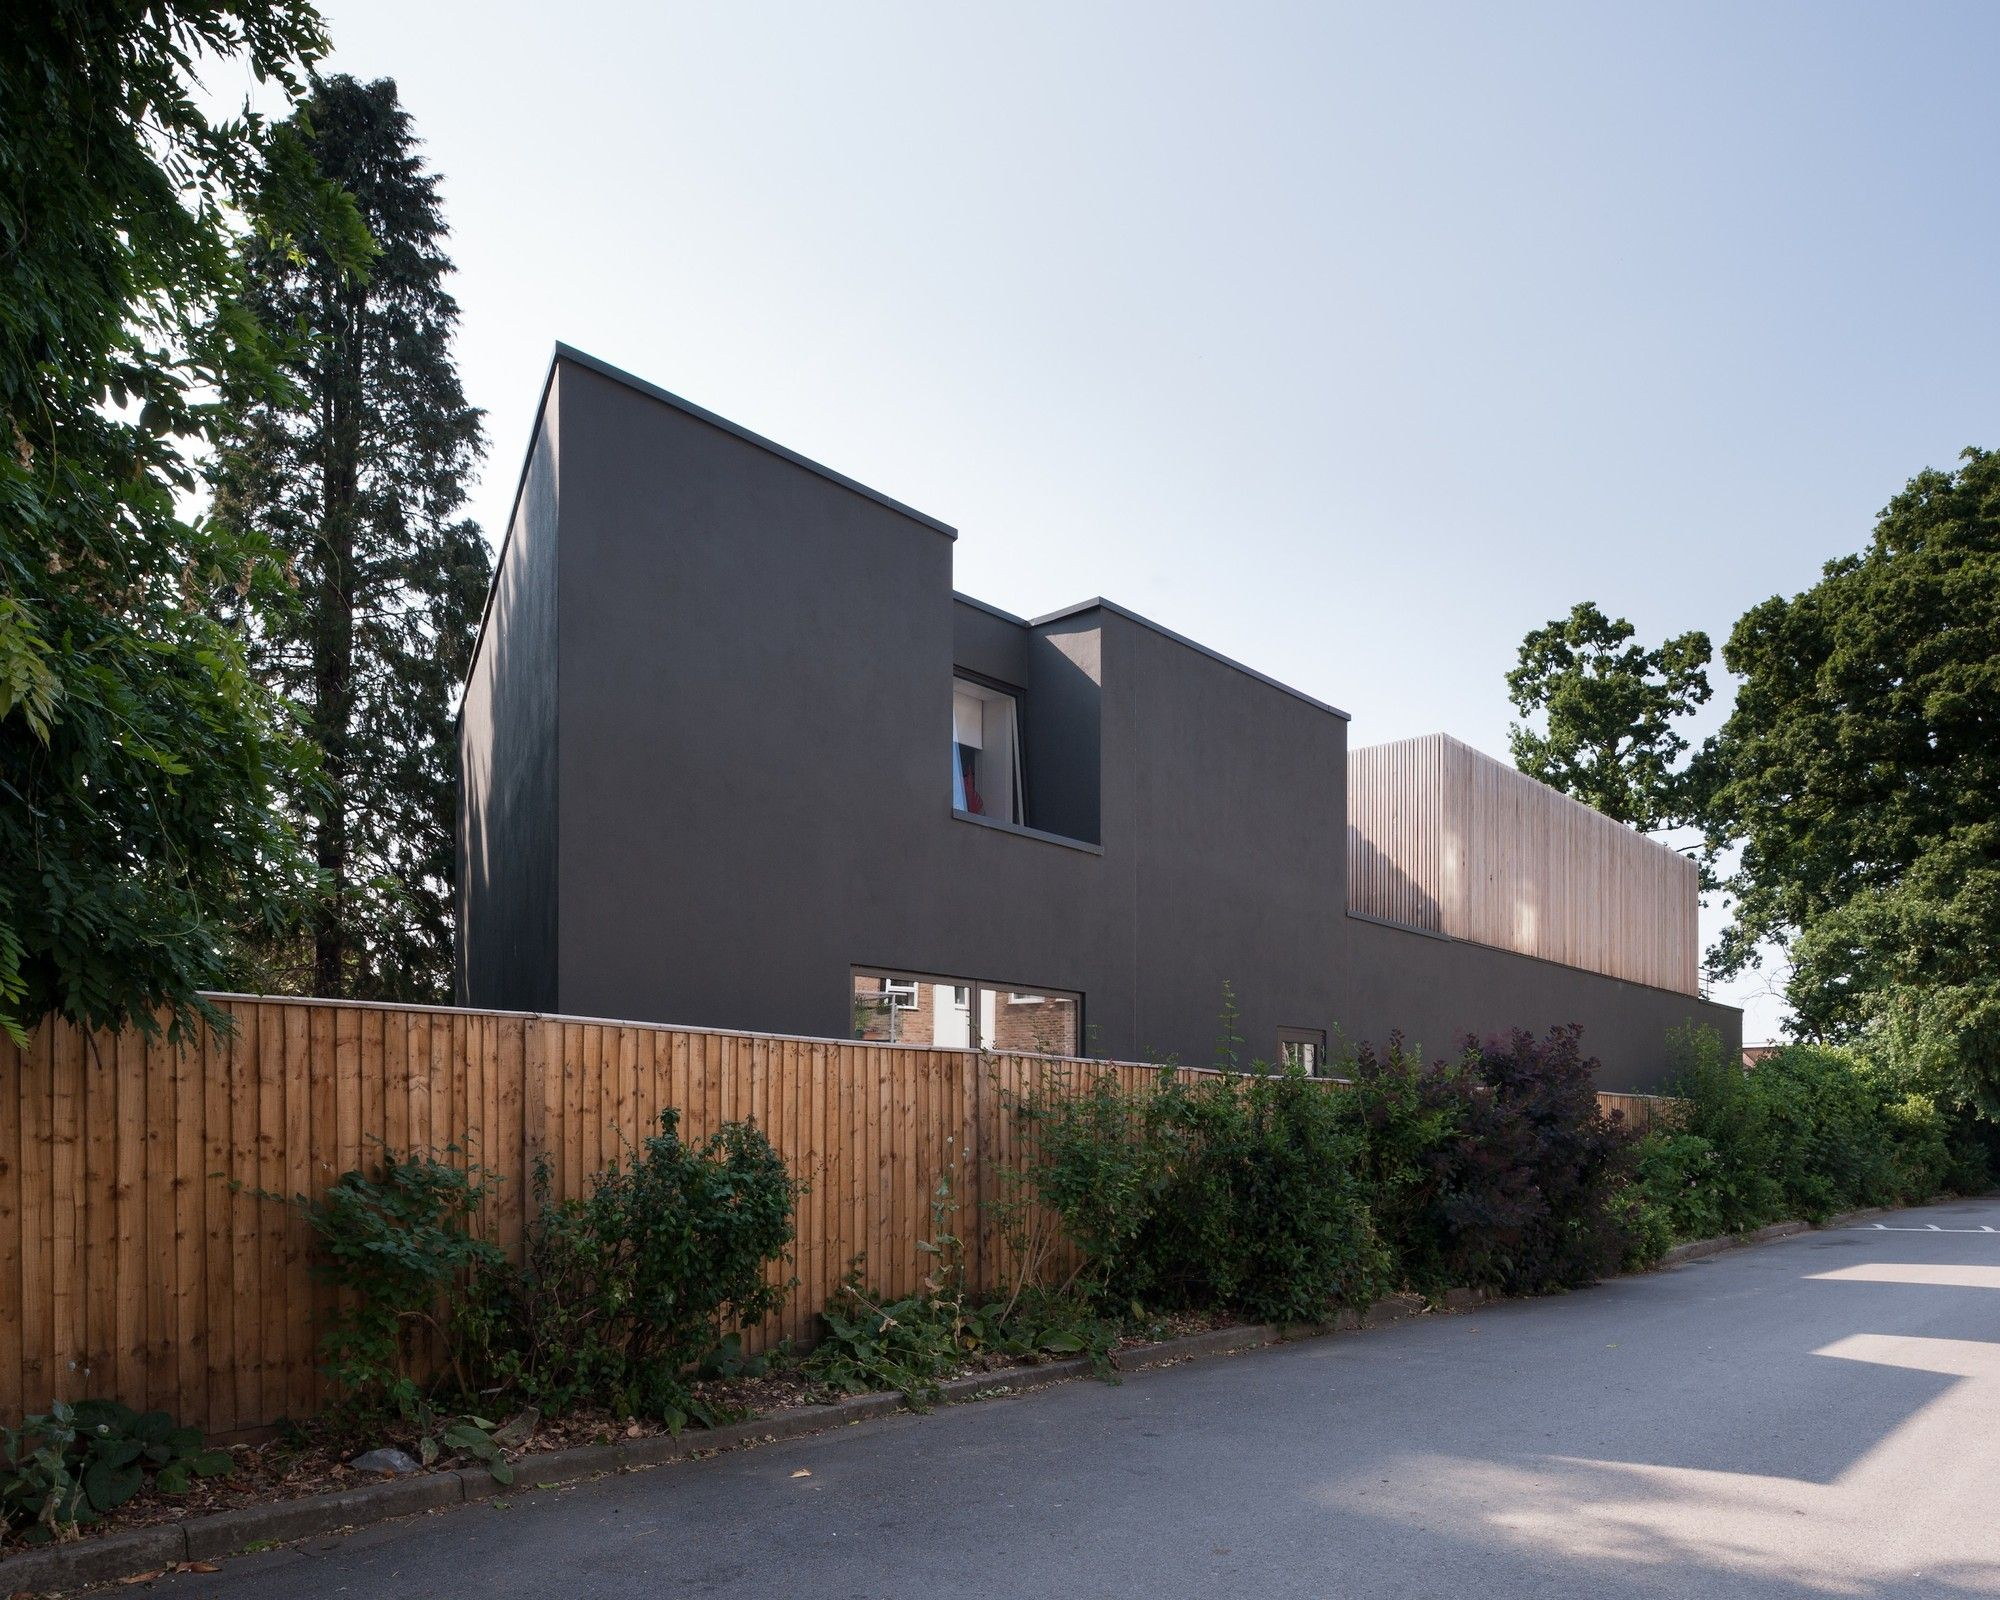 Gallery of Wedge House / SOUP Architects - 22 | Duplex house design